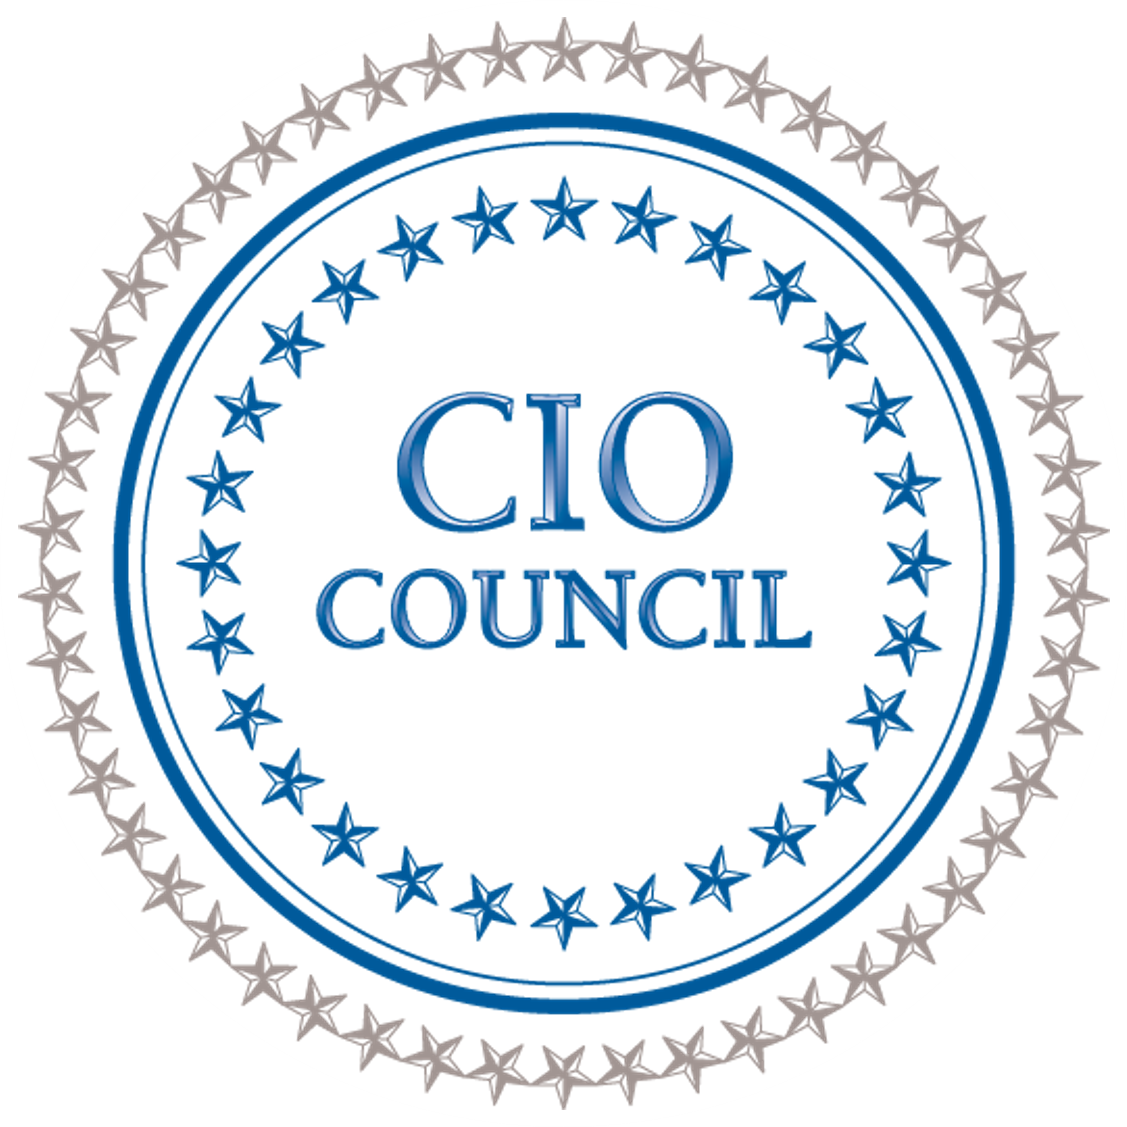 CIO Council seal